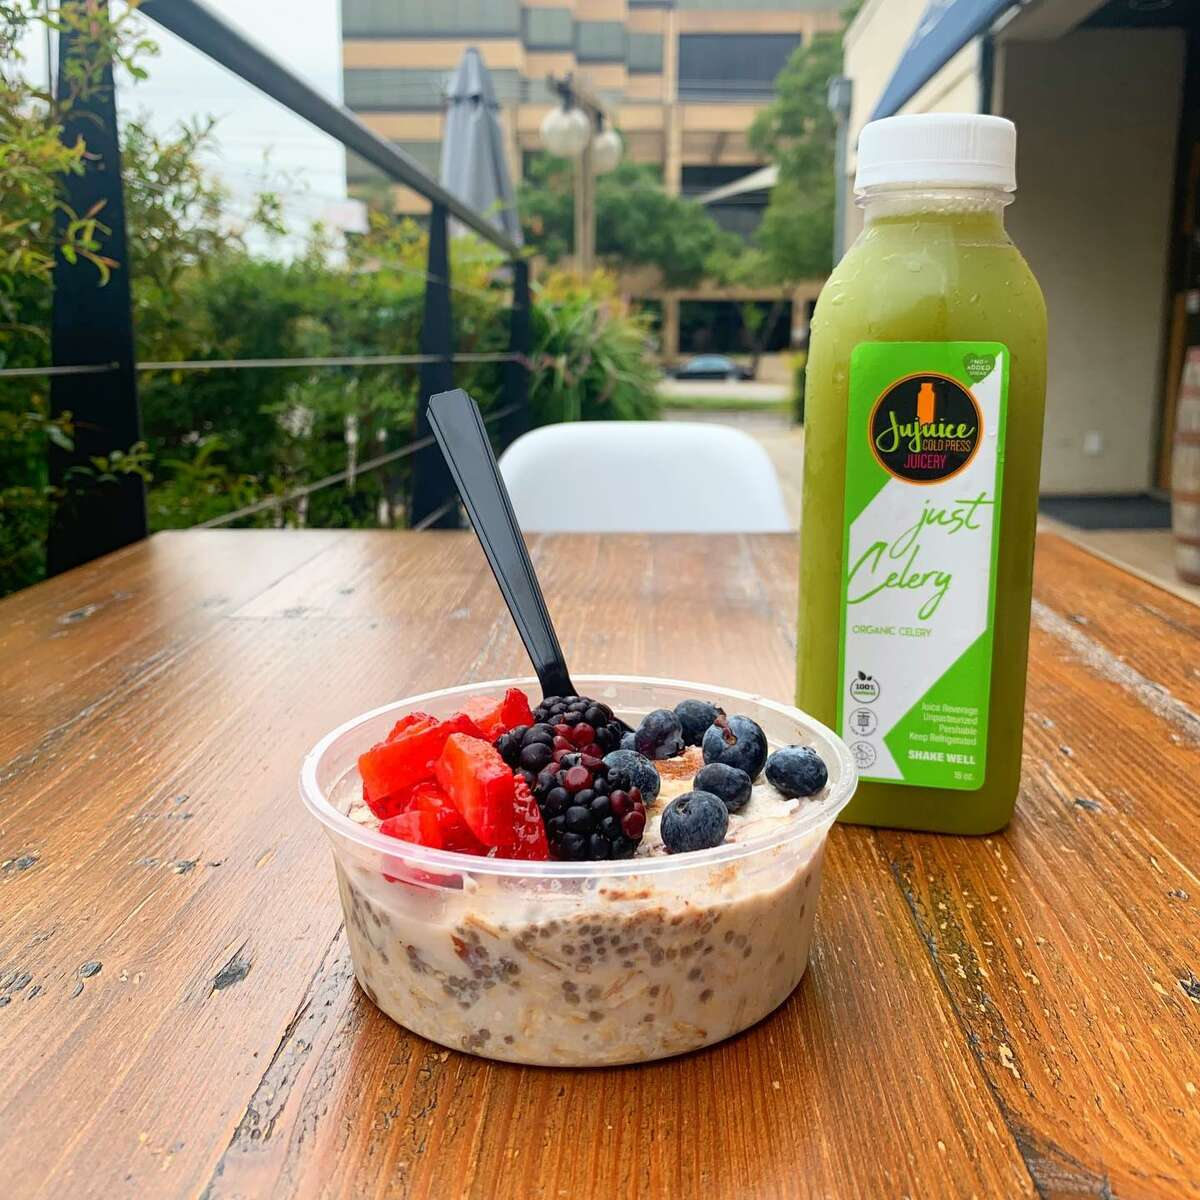 Jujuice Cold Press Juicery offers raw cold-pressed juices, superfood smoothies and acai bowls, as well as overnight oats, chia pudding and ginger shots.